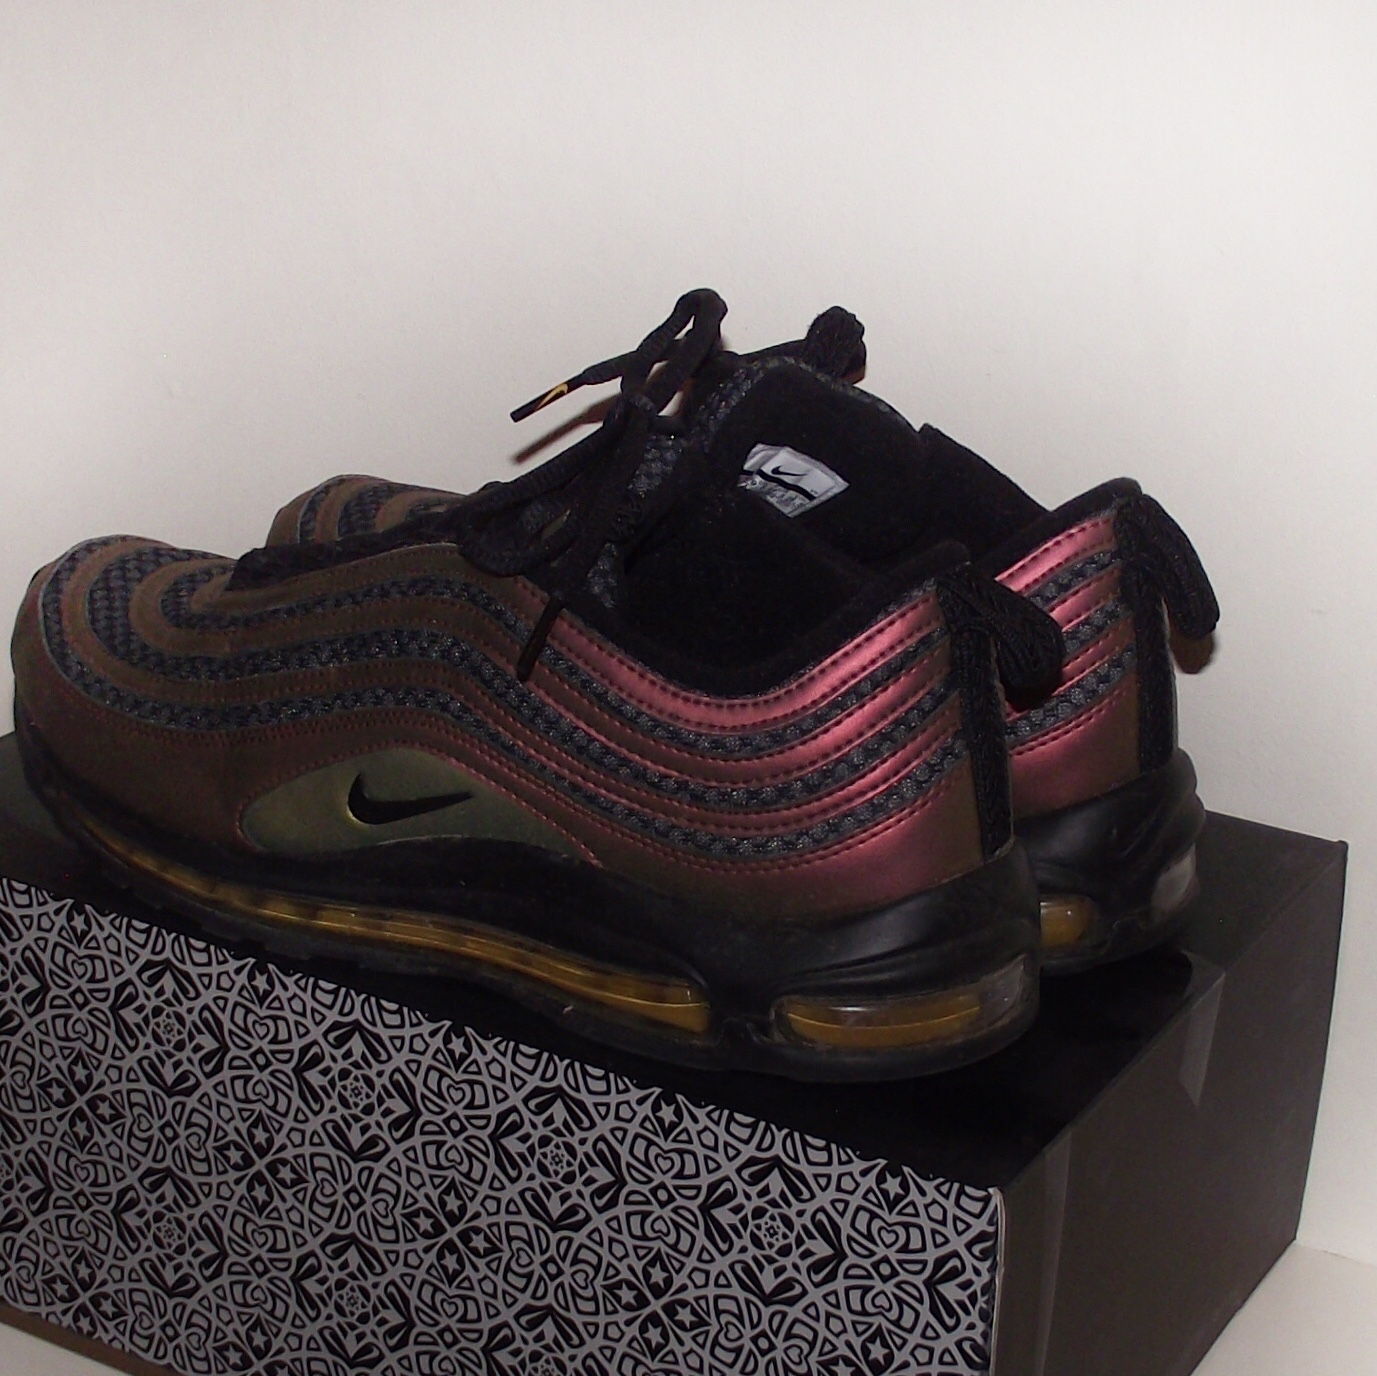 Sold⛔️ Nike Skepta Air Max 97 Amazing condition No Depop